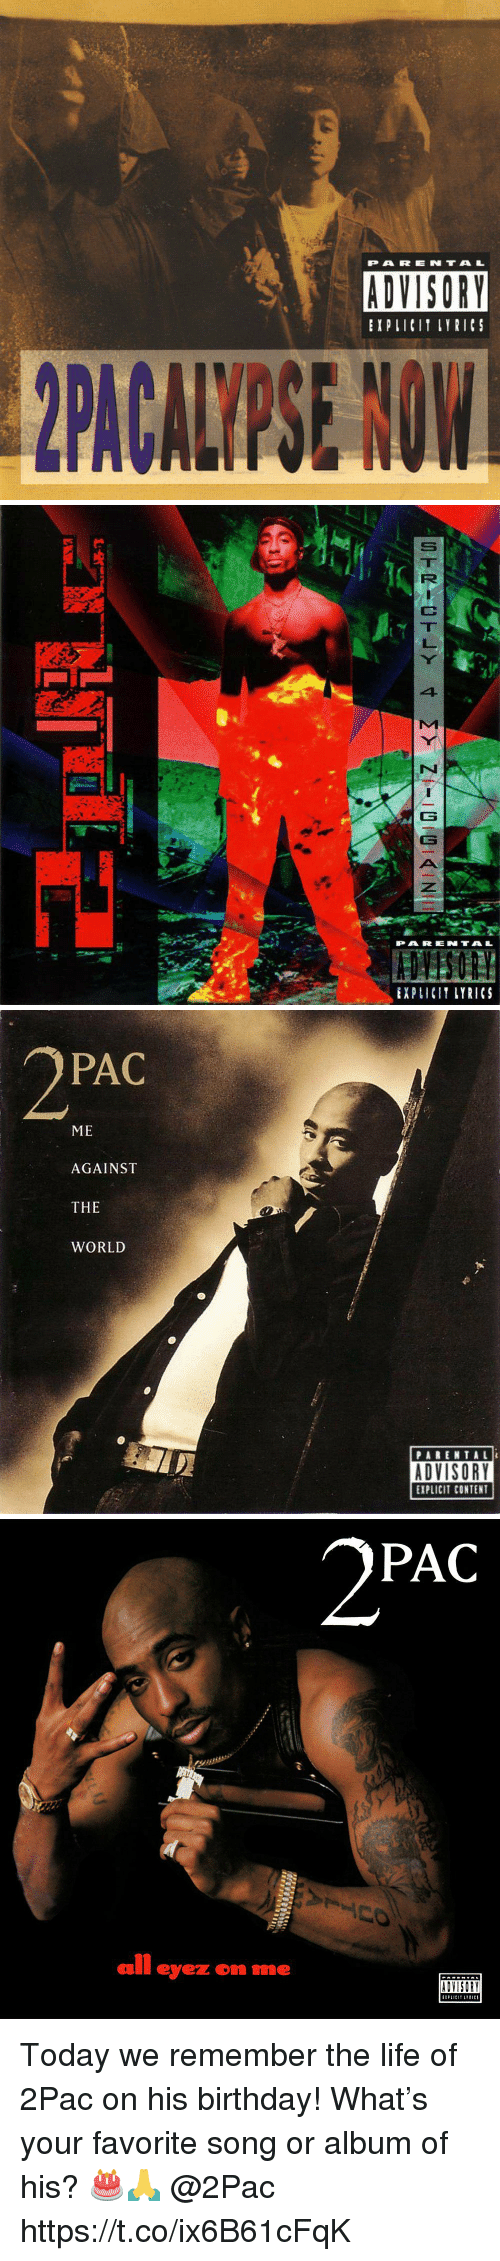 Birthday, Life, and Parental Advisory: PARENTAL  ADVISORY  EXPLICIT LYRICS   PAR ENTAL  EXPLICIT LYRICS   PAC  ME  AGAINST  THE  WORLD  PARENTALI  ADVISORY  EXPLICIT CONTENT   PAC  all eyez on me  ADVISORY Today we remember the life of 2Pac on his birthday! What's your favorite song or album of his? 🎂🙏 @2Pac https://t.co/ix6B61cFqK